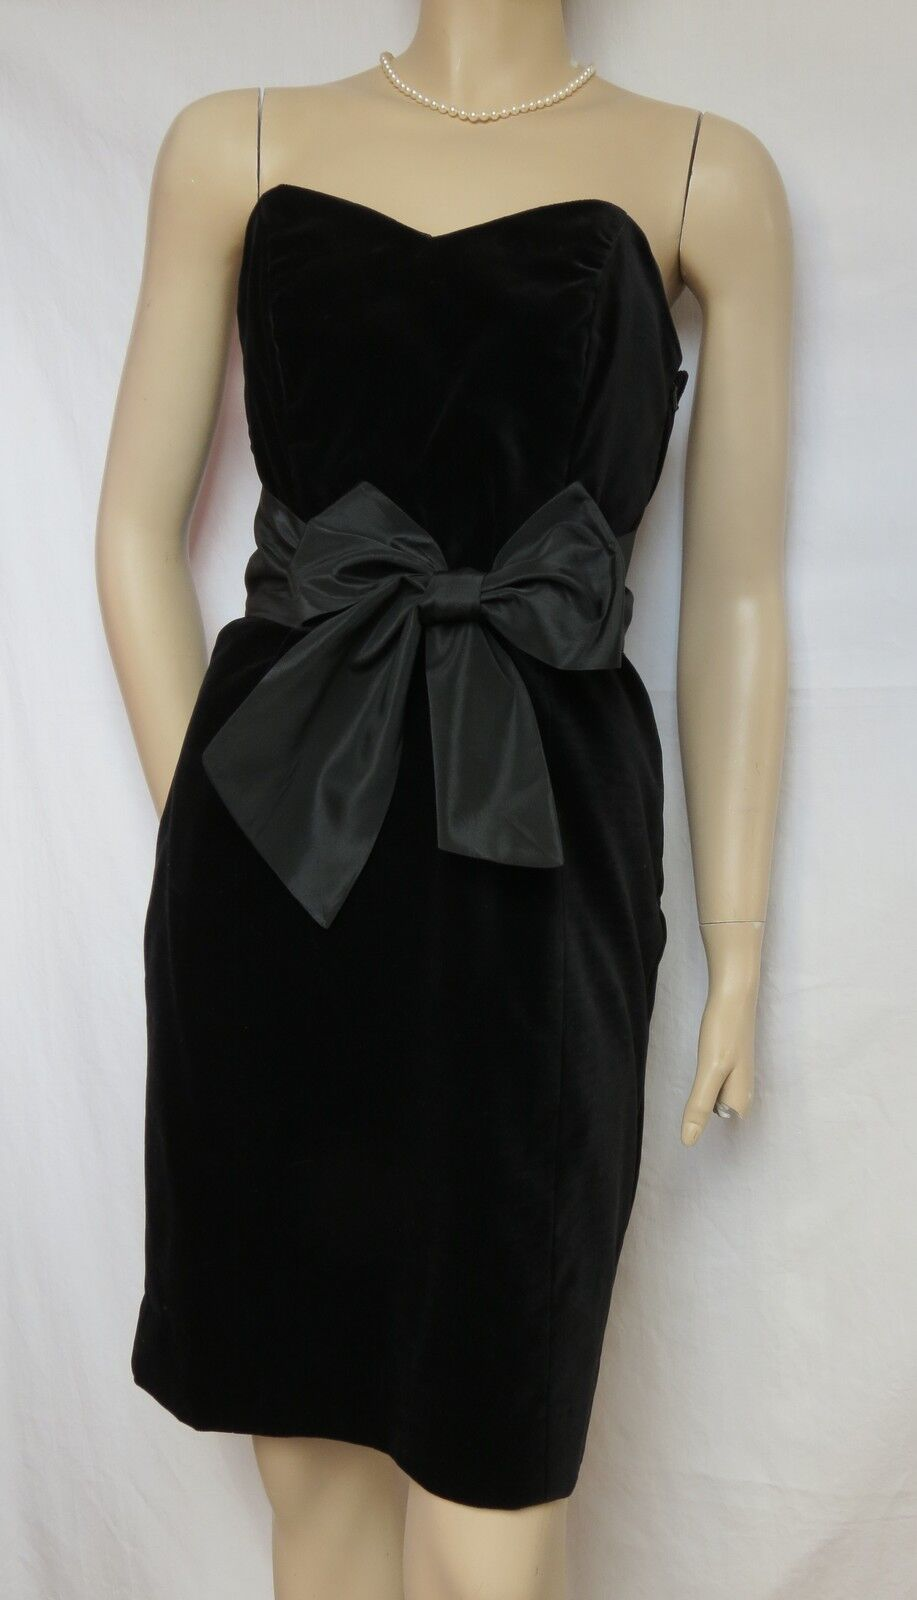 68a513054aaf Laura Ashley Velluto Abito 38 Nero Nero Nero Pizzo Matrimonio Cocktail  Vintage... 6e9a1d